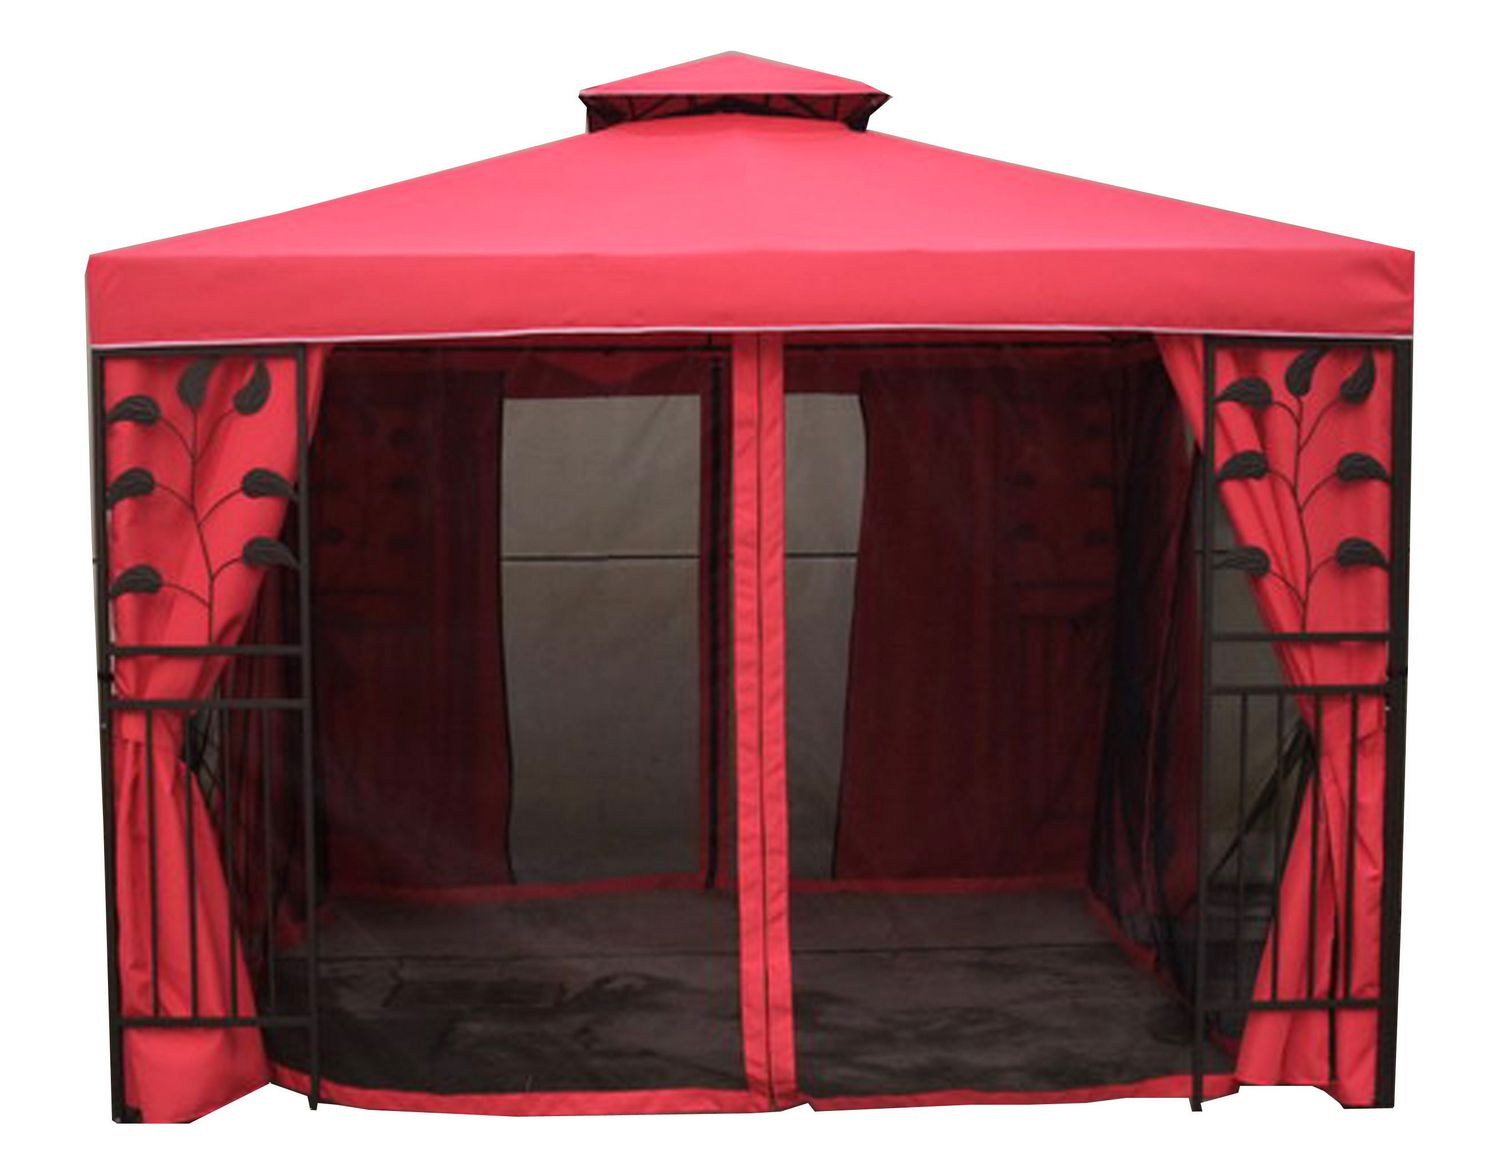 Backyard Cabanas Gazebos : Backyard Cabanas Gazebos Buy gazebos & canopies online walmart canada